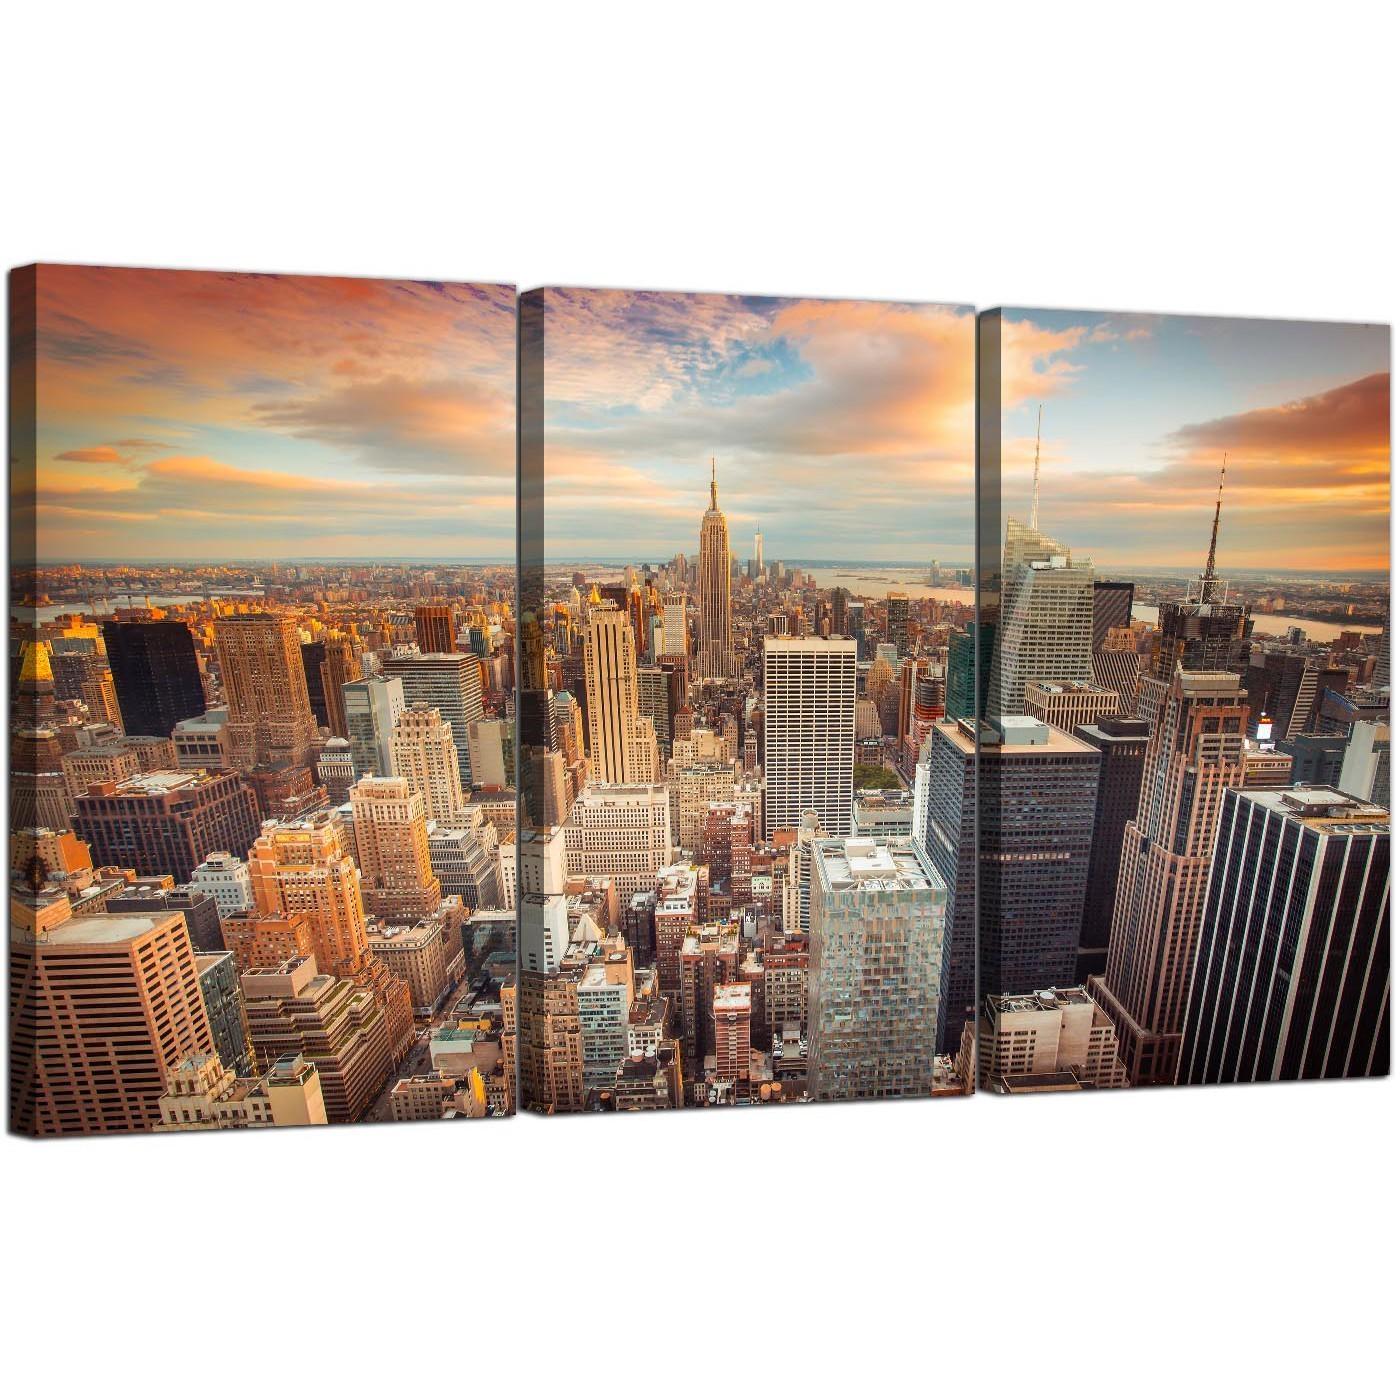 Cheap New York Skyline Canvas Wall Art 3 Panel For Your Living Room Throughout New York City Canvas Wall Art (View 6 of 20)